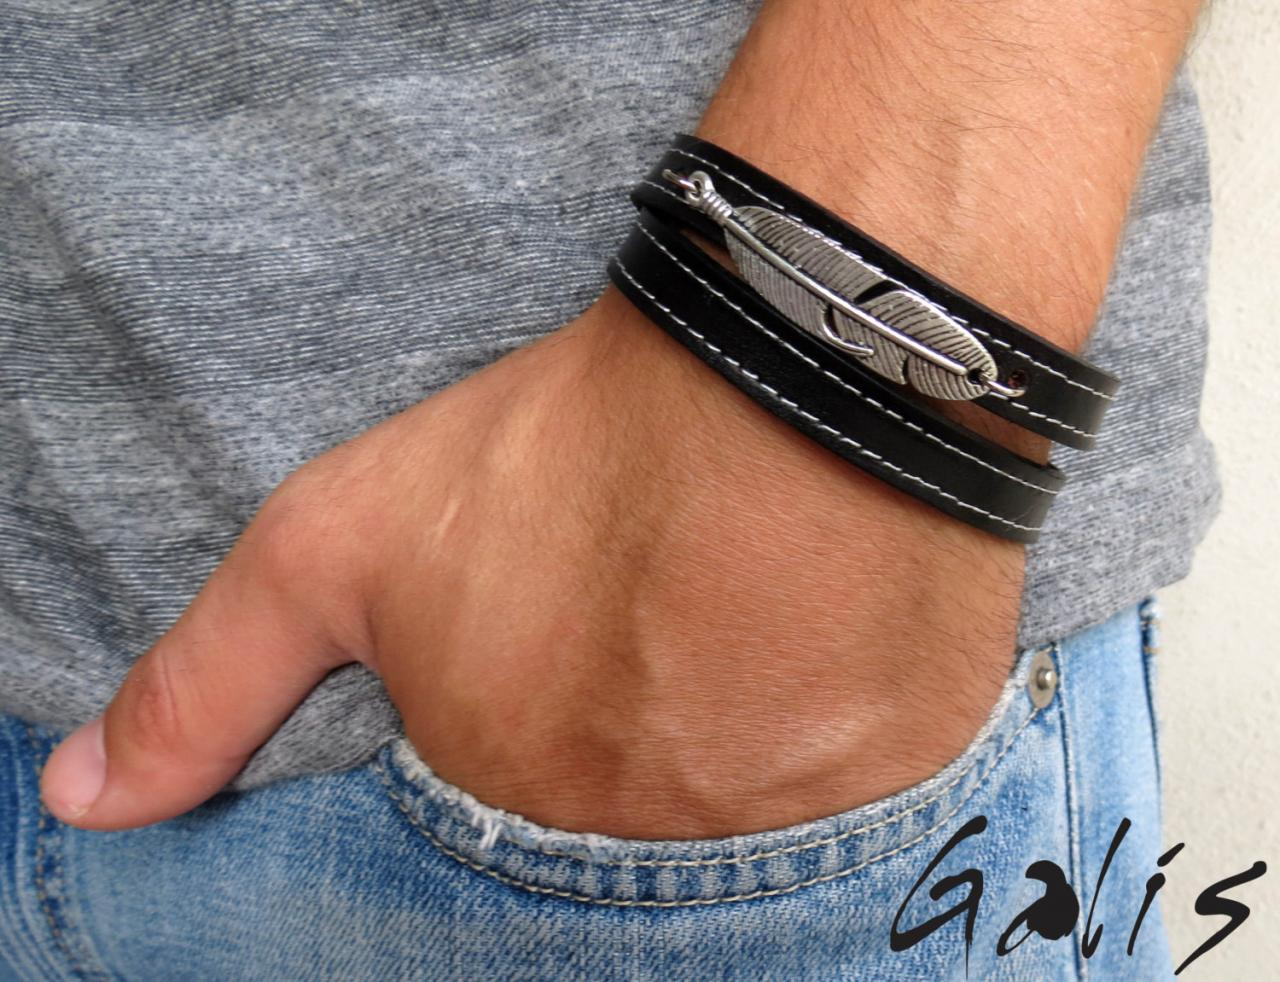 Men's Bracelet - Men's Feather Bracelet - Men's Leather Bracelet - Men's Jewelry - Men's Gift - Boyfrienf Gift - Husband Gift - Gift for him - Gift For Dad - Present For Men - Mlae Jewelry - Male Bracelet